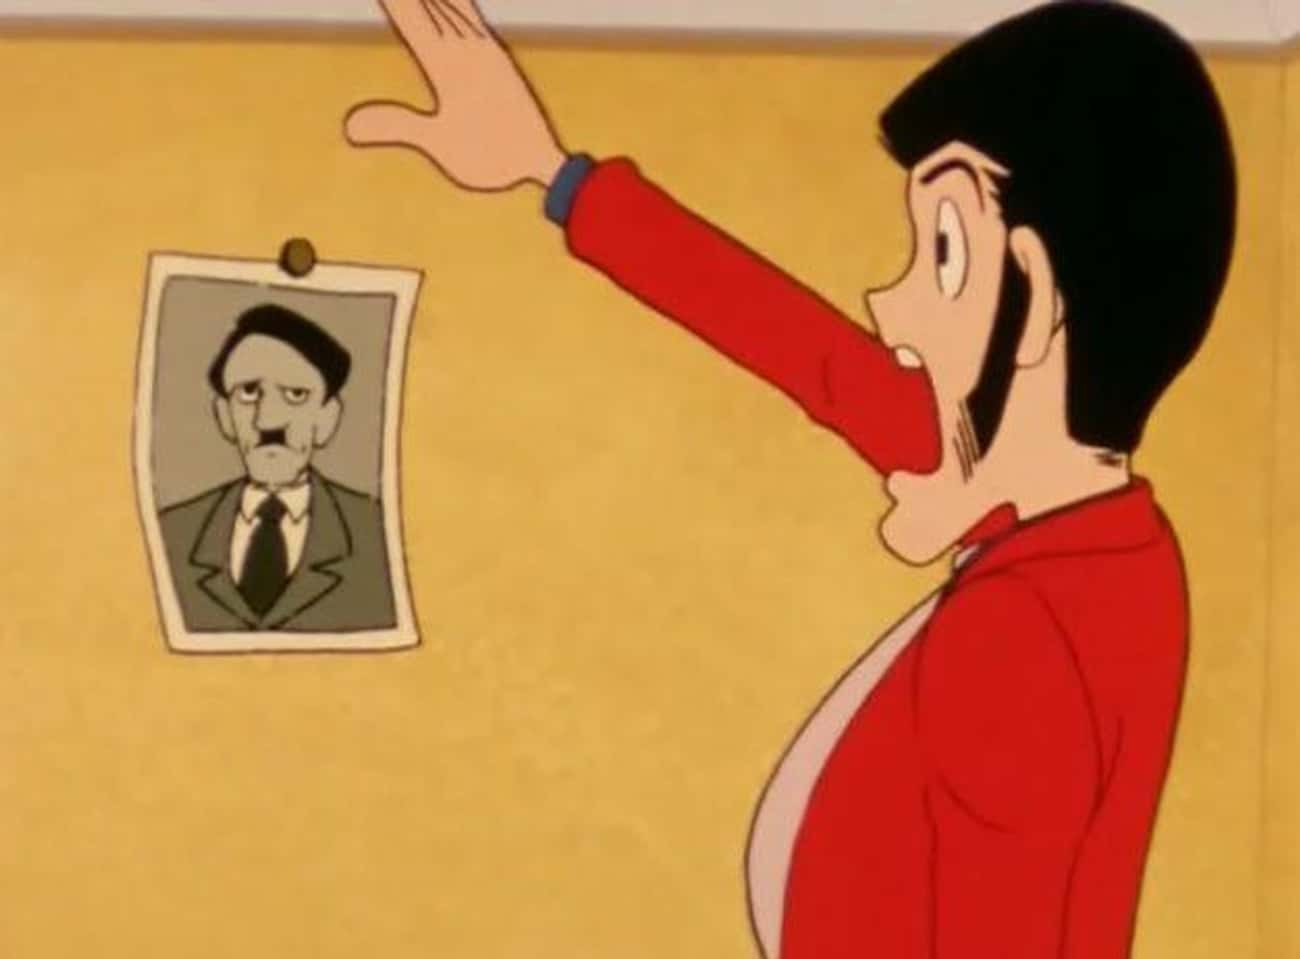 'Lupin III' Impersonat is listed (or ranked) 2 on the list 16 Times Hitler Showed Up In Anime